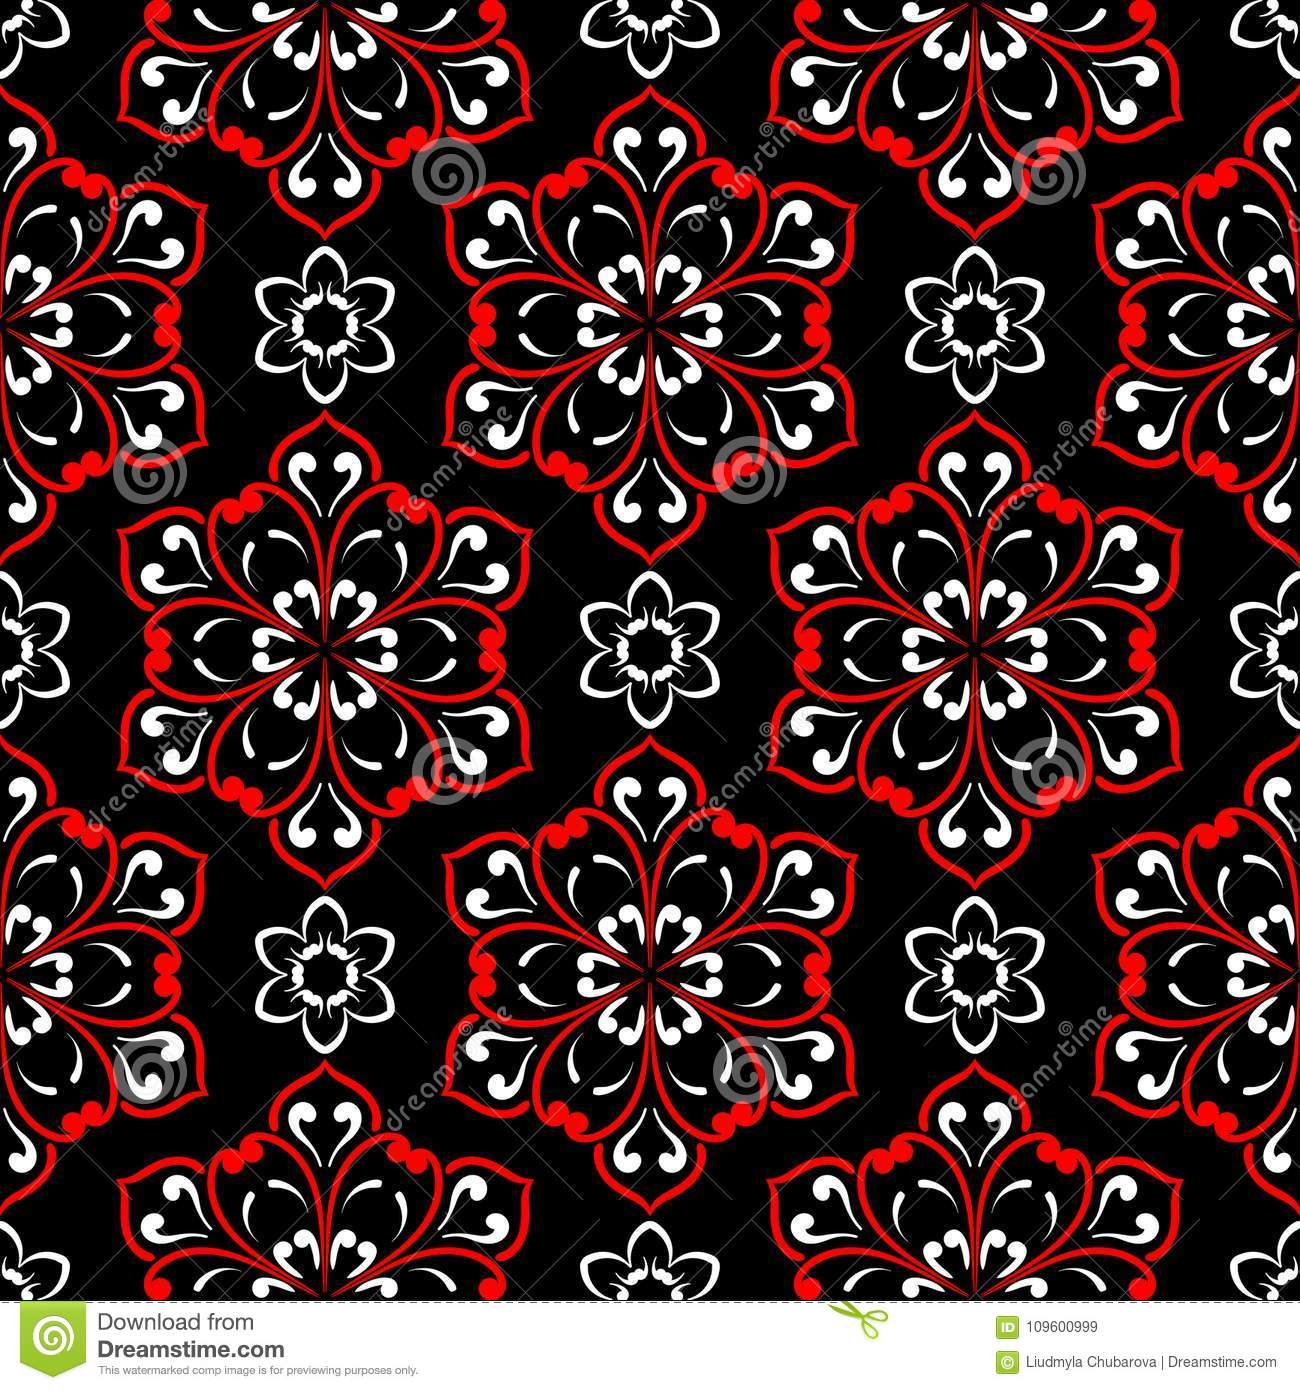 black red and white floral seamless pattern wallpaper background stock vector illustration of beautiful drawn 109600999 https www dreamstime com black red white floral seamless pattern wallpaper textile fabrics background image109600999